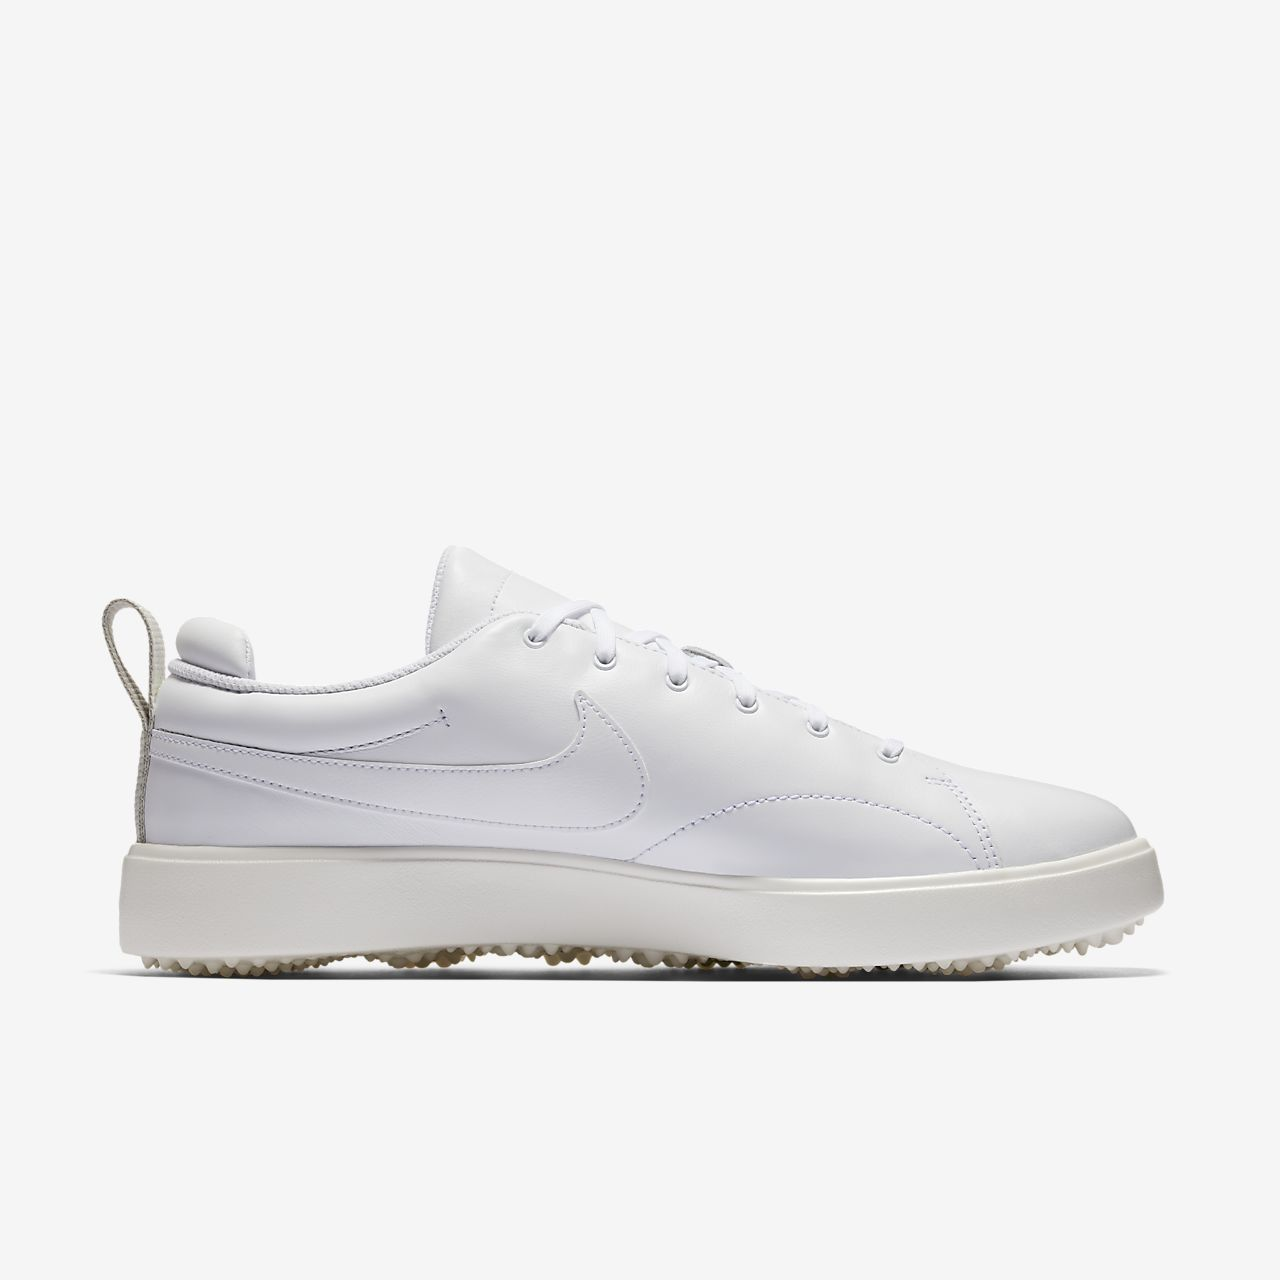 Nike Performance COURSE CLASSIC - xQO172wLAH shoes - white/sail/black sw5ig